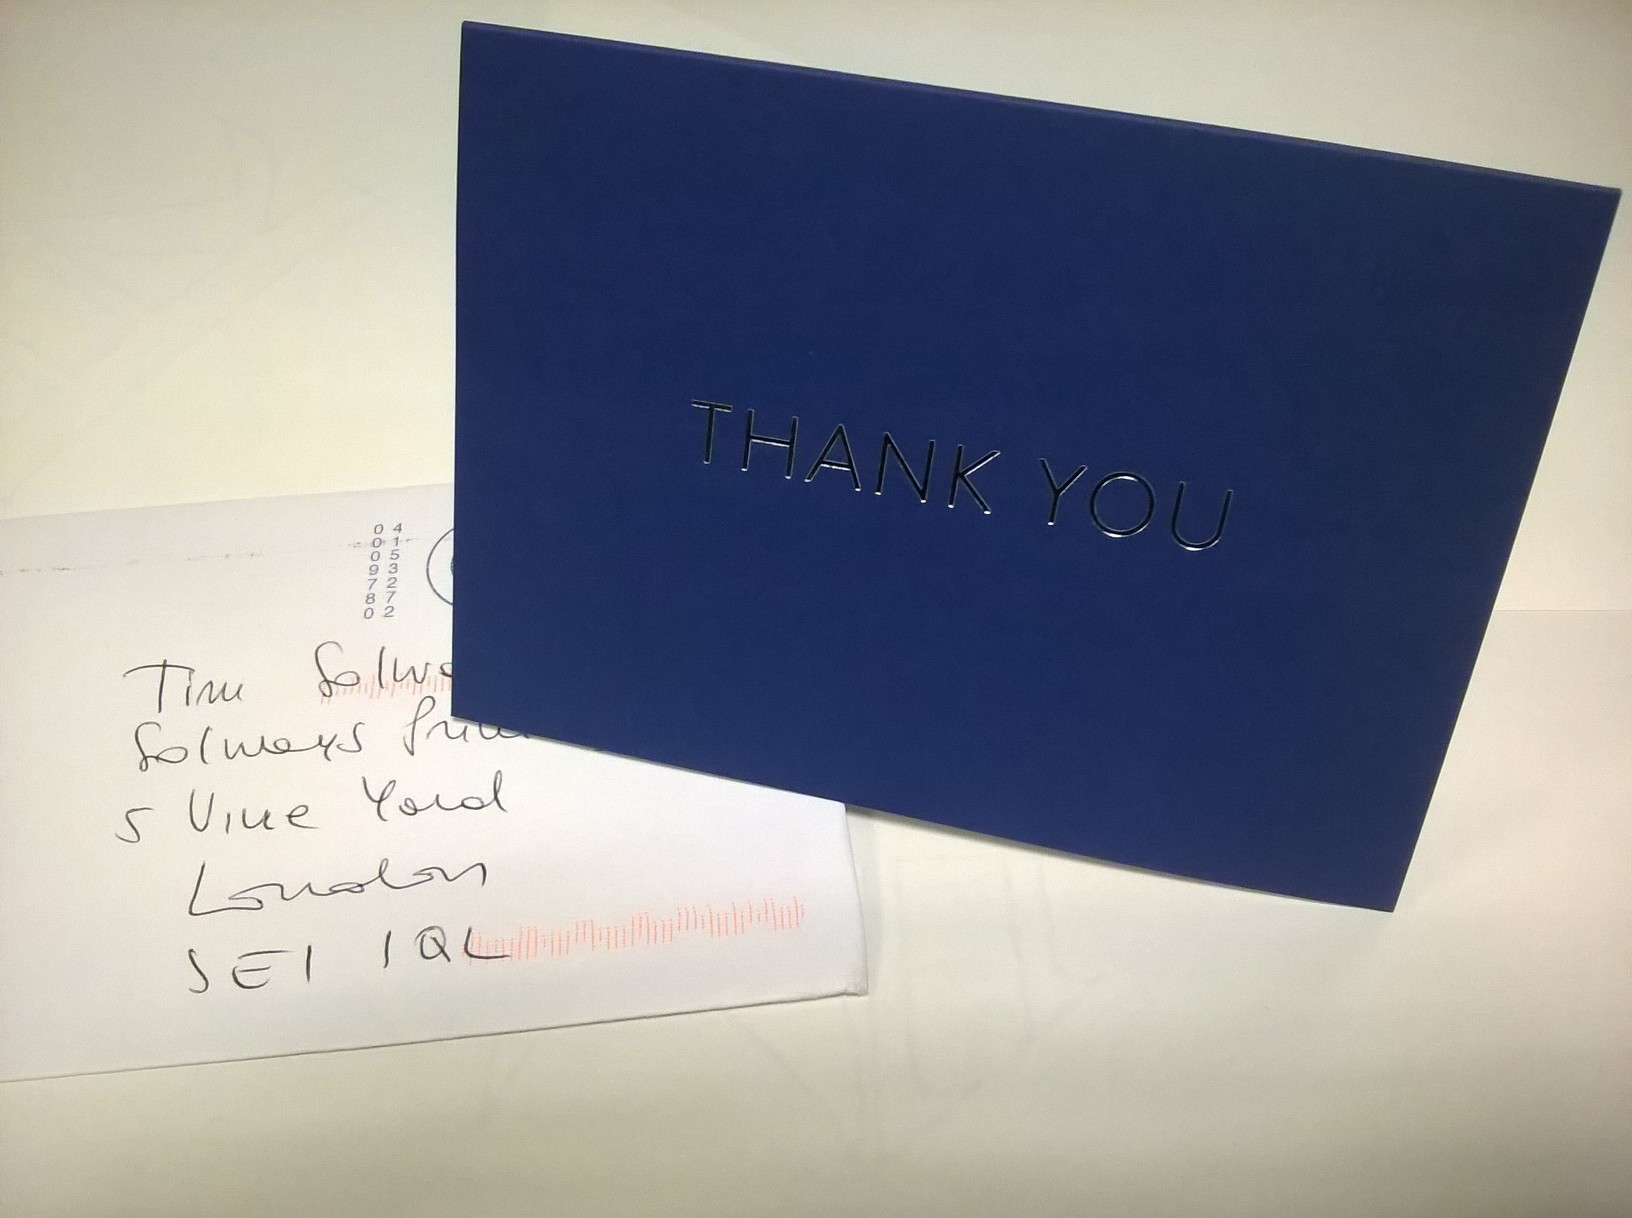 A thank you note from Solways Quality Printing London